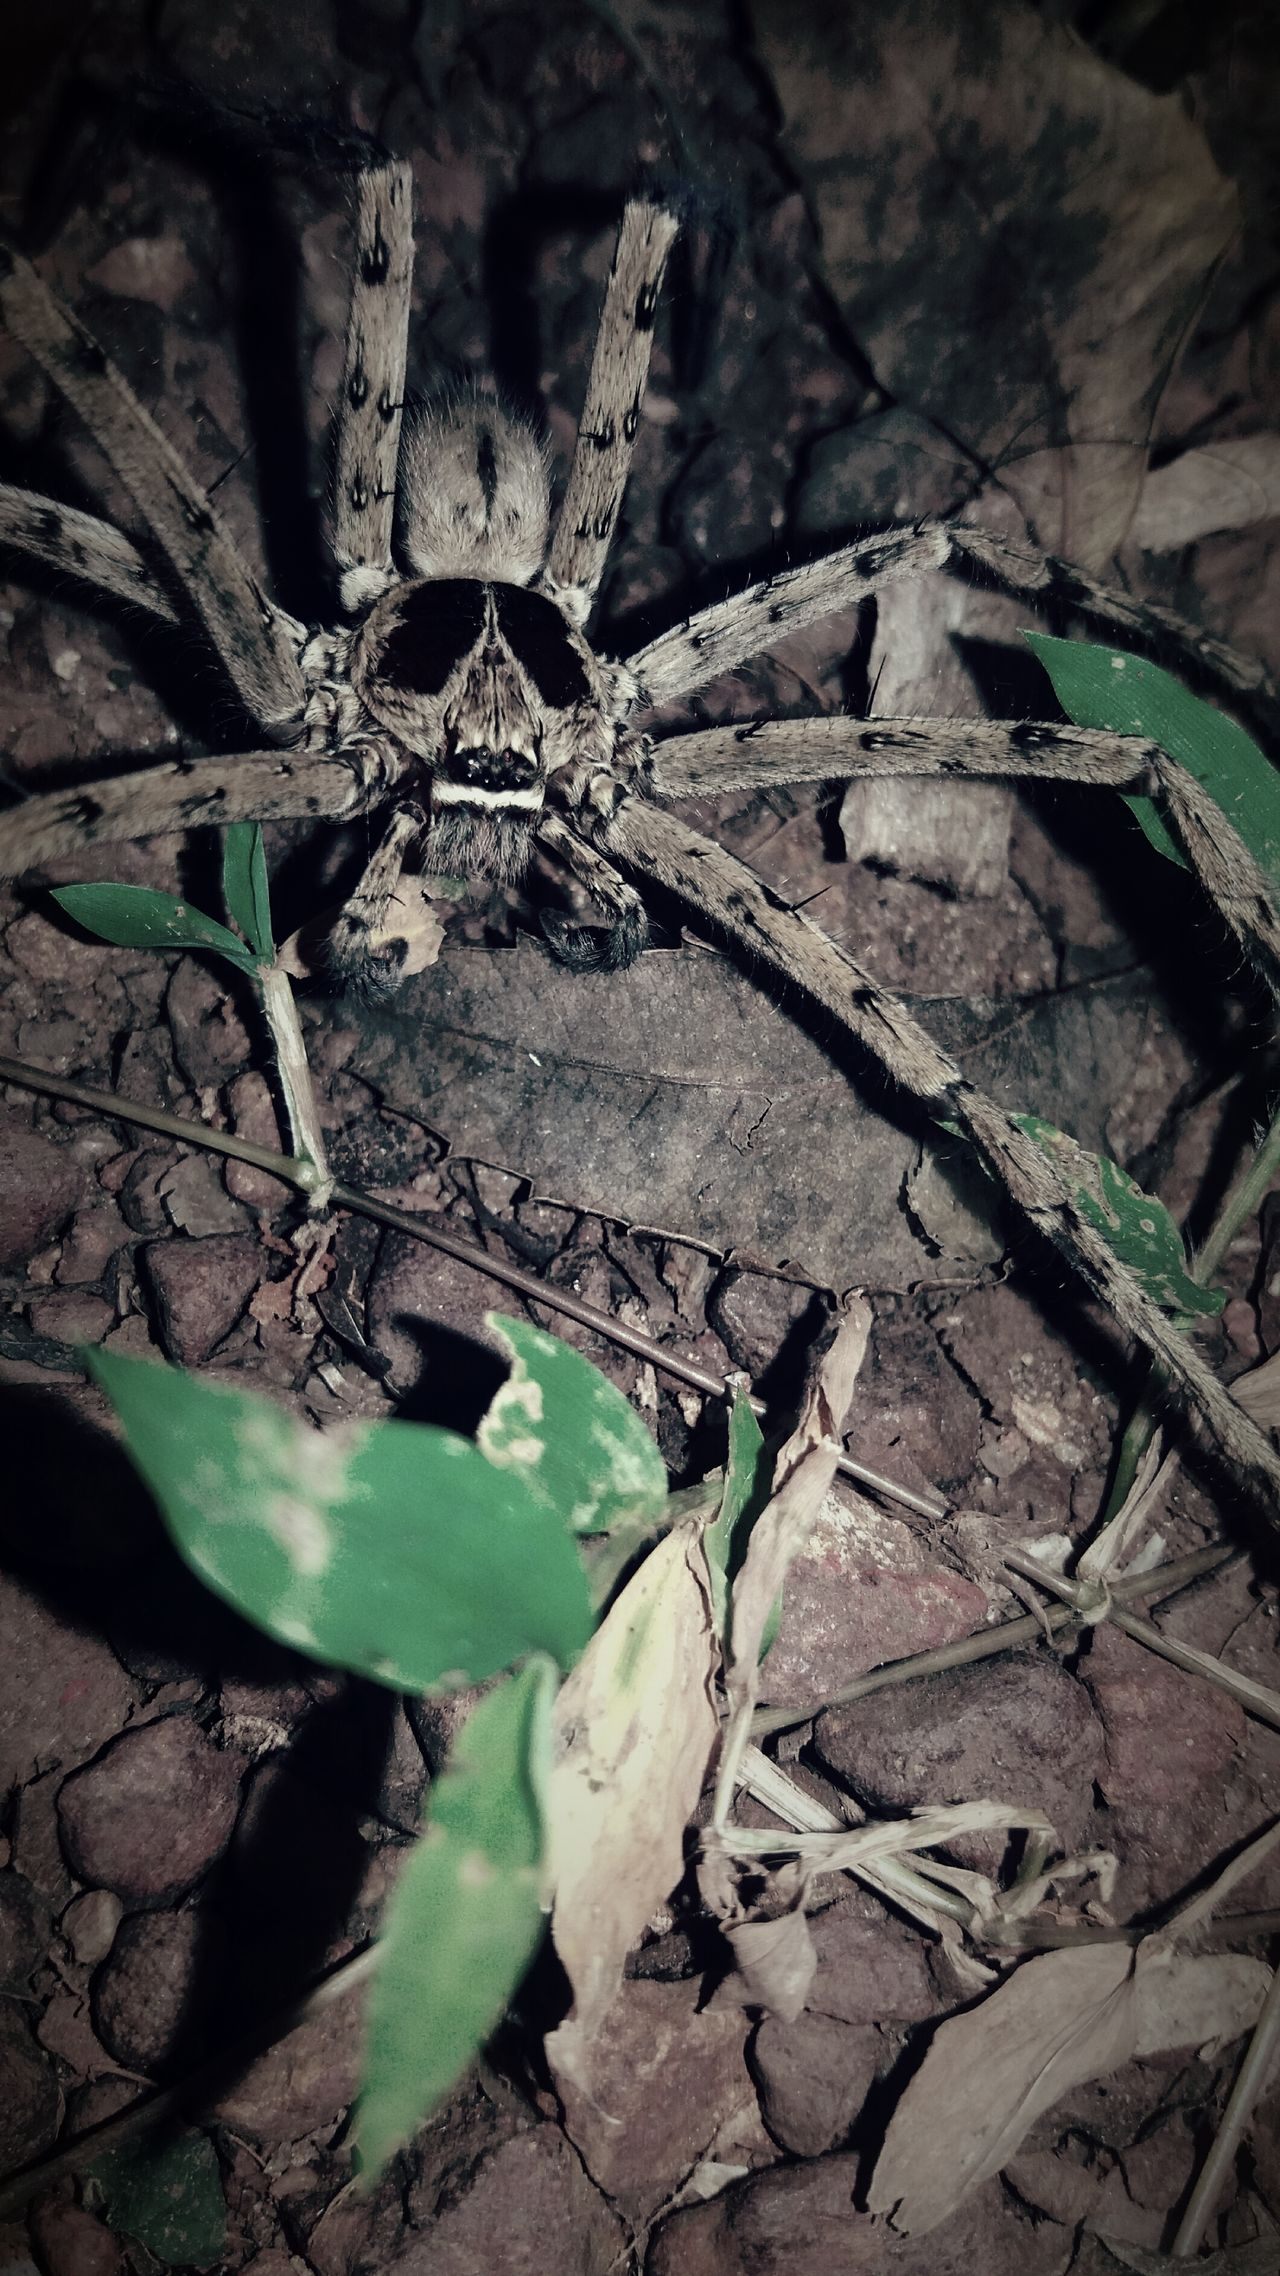 Mobile Photography spider 🕷 No People Outdoors Spiderman Spiderworld Spider Eyes Spider Nature_collection Eyenaturelover Rare Photography